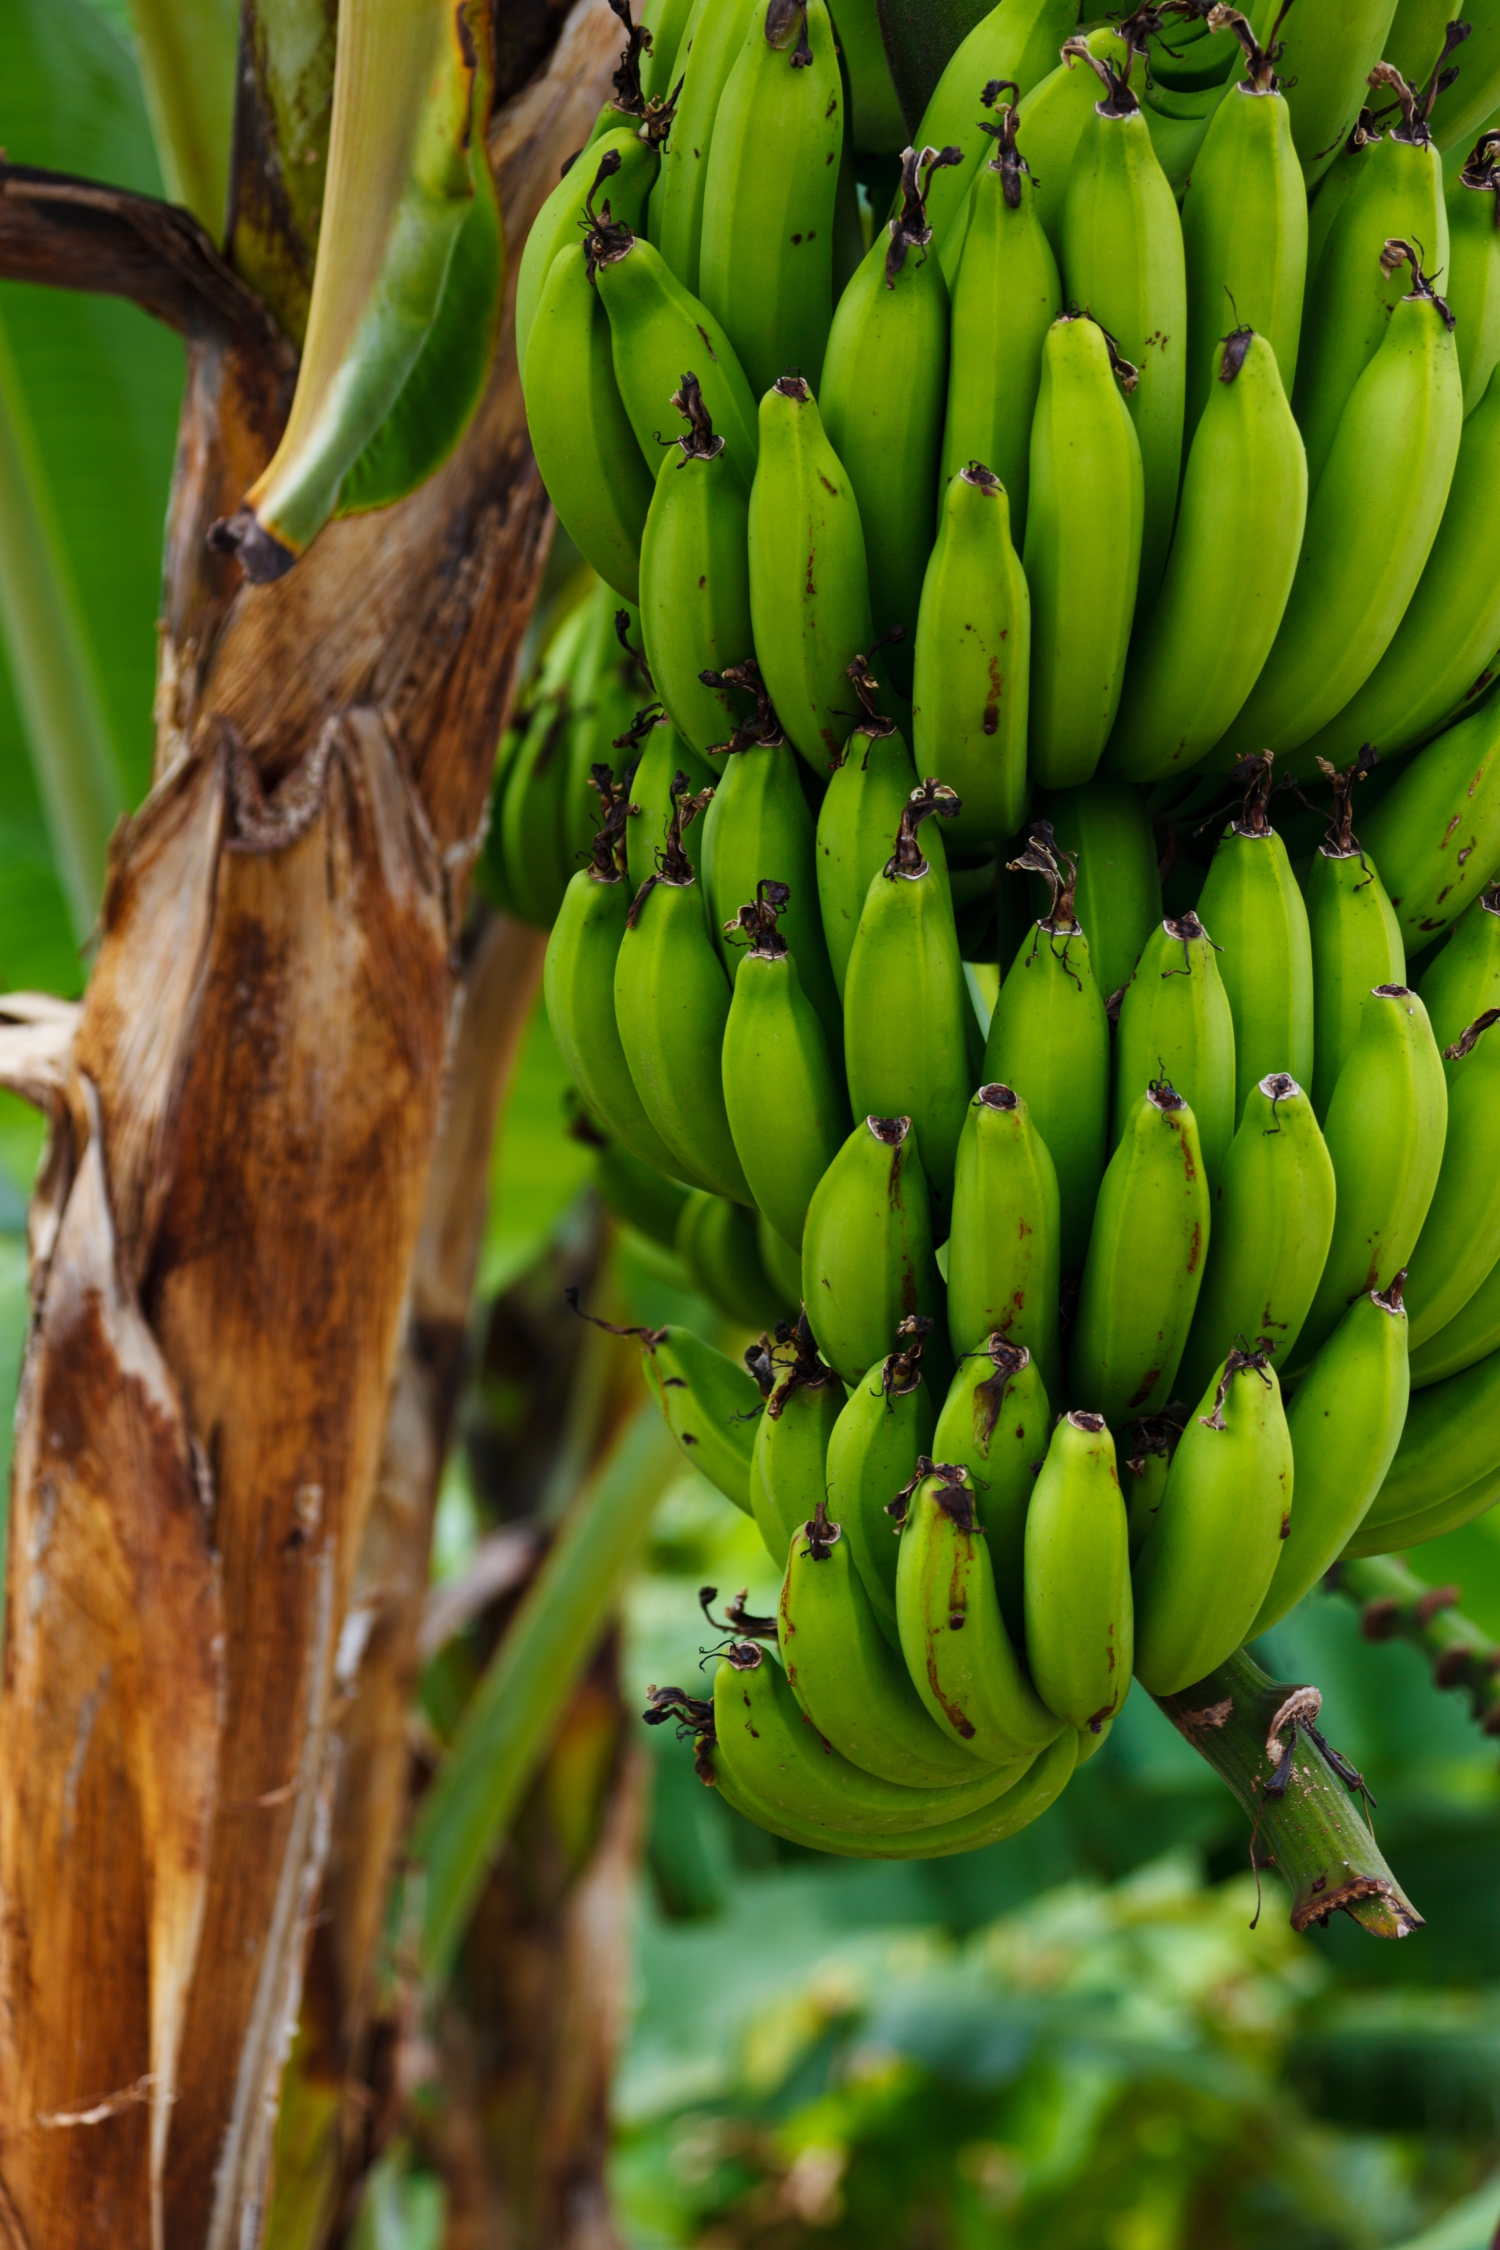 Bananas are commonplace and very useful in Vietnamese cuisine